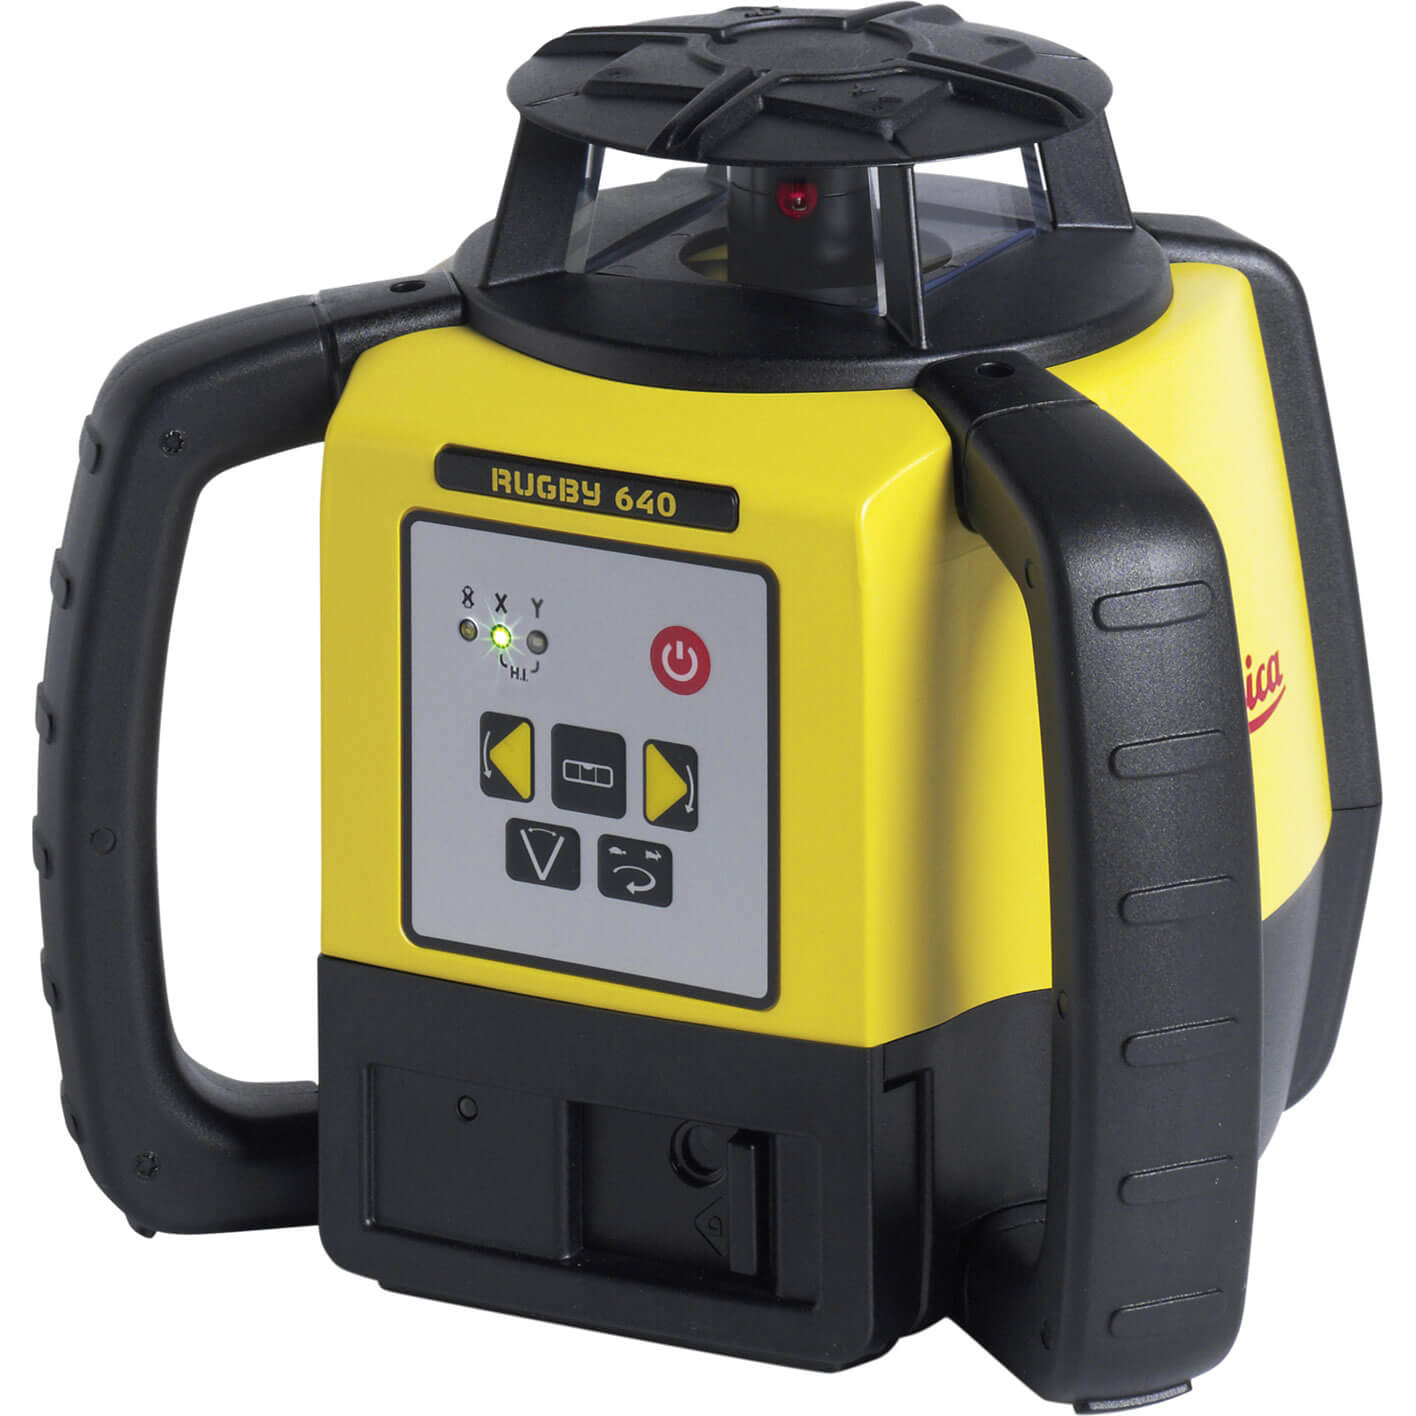 Image of Leica Geosystems Rugby 640 Rotating Laser Level